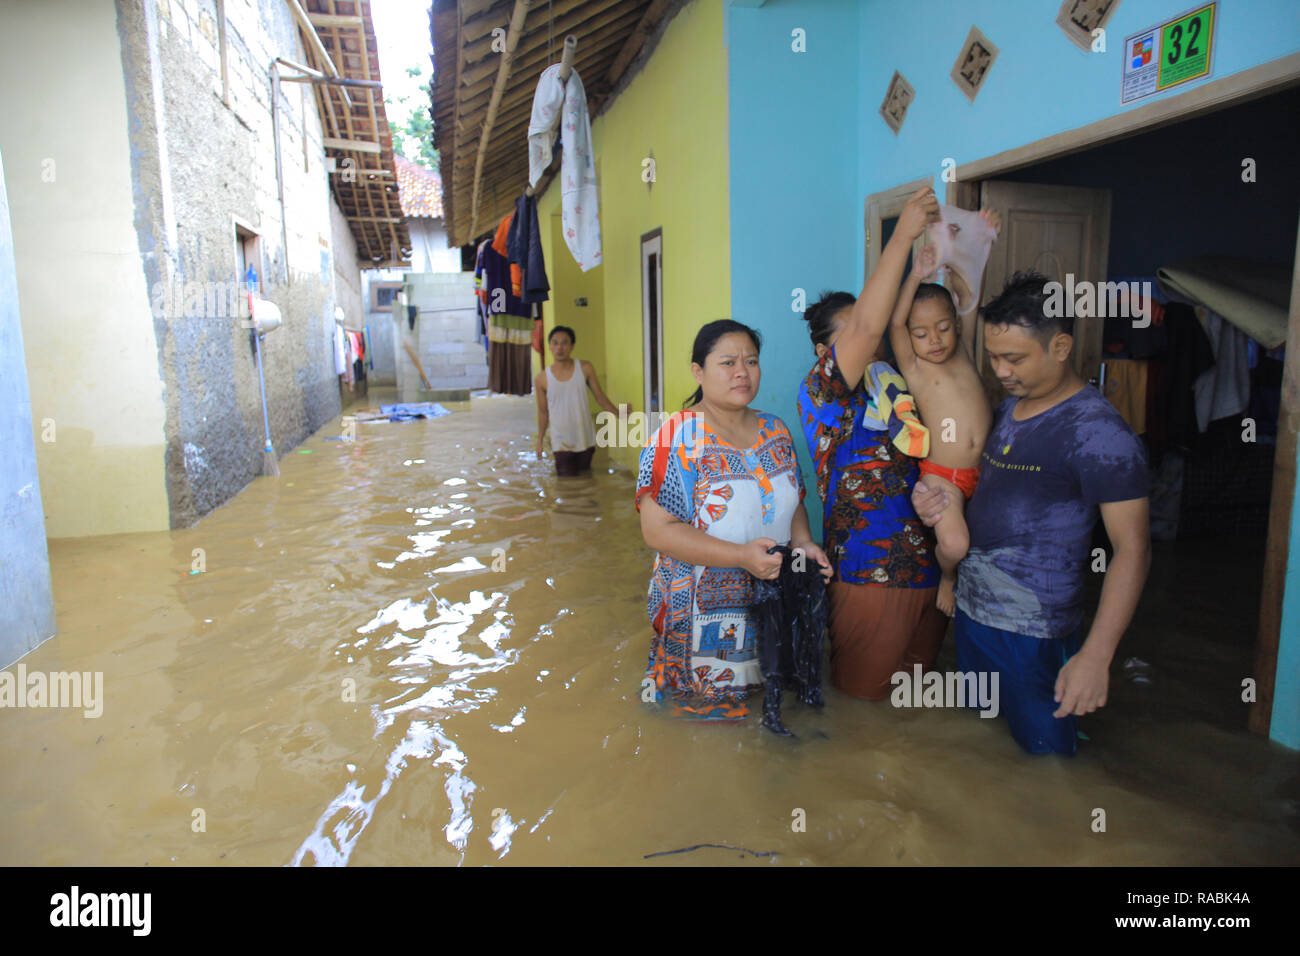 Bogor, West Java, Indonesia. 2nd Jan, 2019. Residents seen outside of their house during a flood. Dozens of residents were evacuated due to the flood disaster that hit village Rancamaya Cikobak RT 03/04, Rancamaya, Bogor City. This flood began to hit dozens of houses in Kampung Rancamaya Cikobak due to the flow of the Cisadane tributary, the Cimakaci River overflowing. Credit: Adriana Adinandra/SOPA Images/ZUMA Wire/Alamy Live News - Stock Image